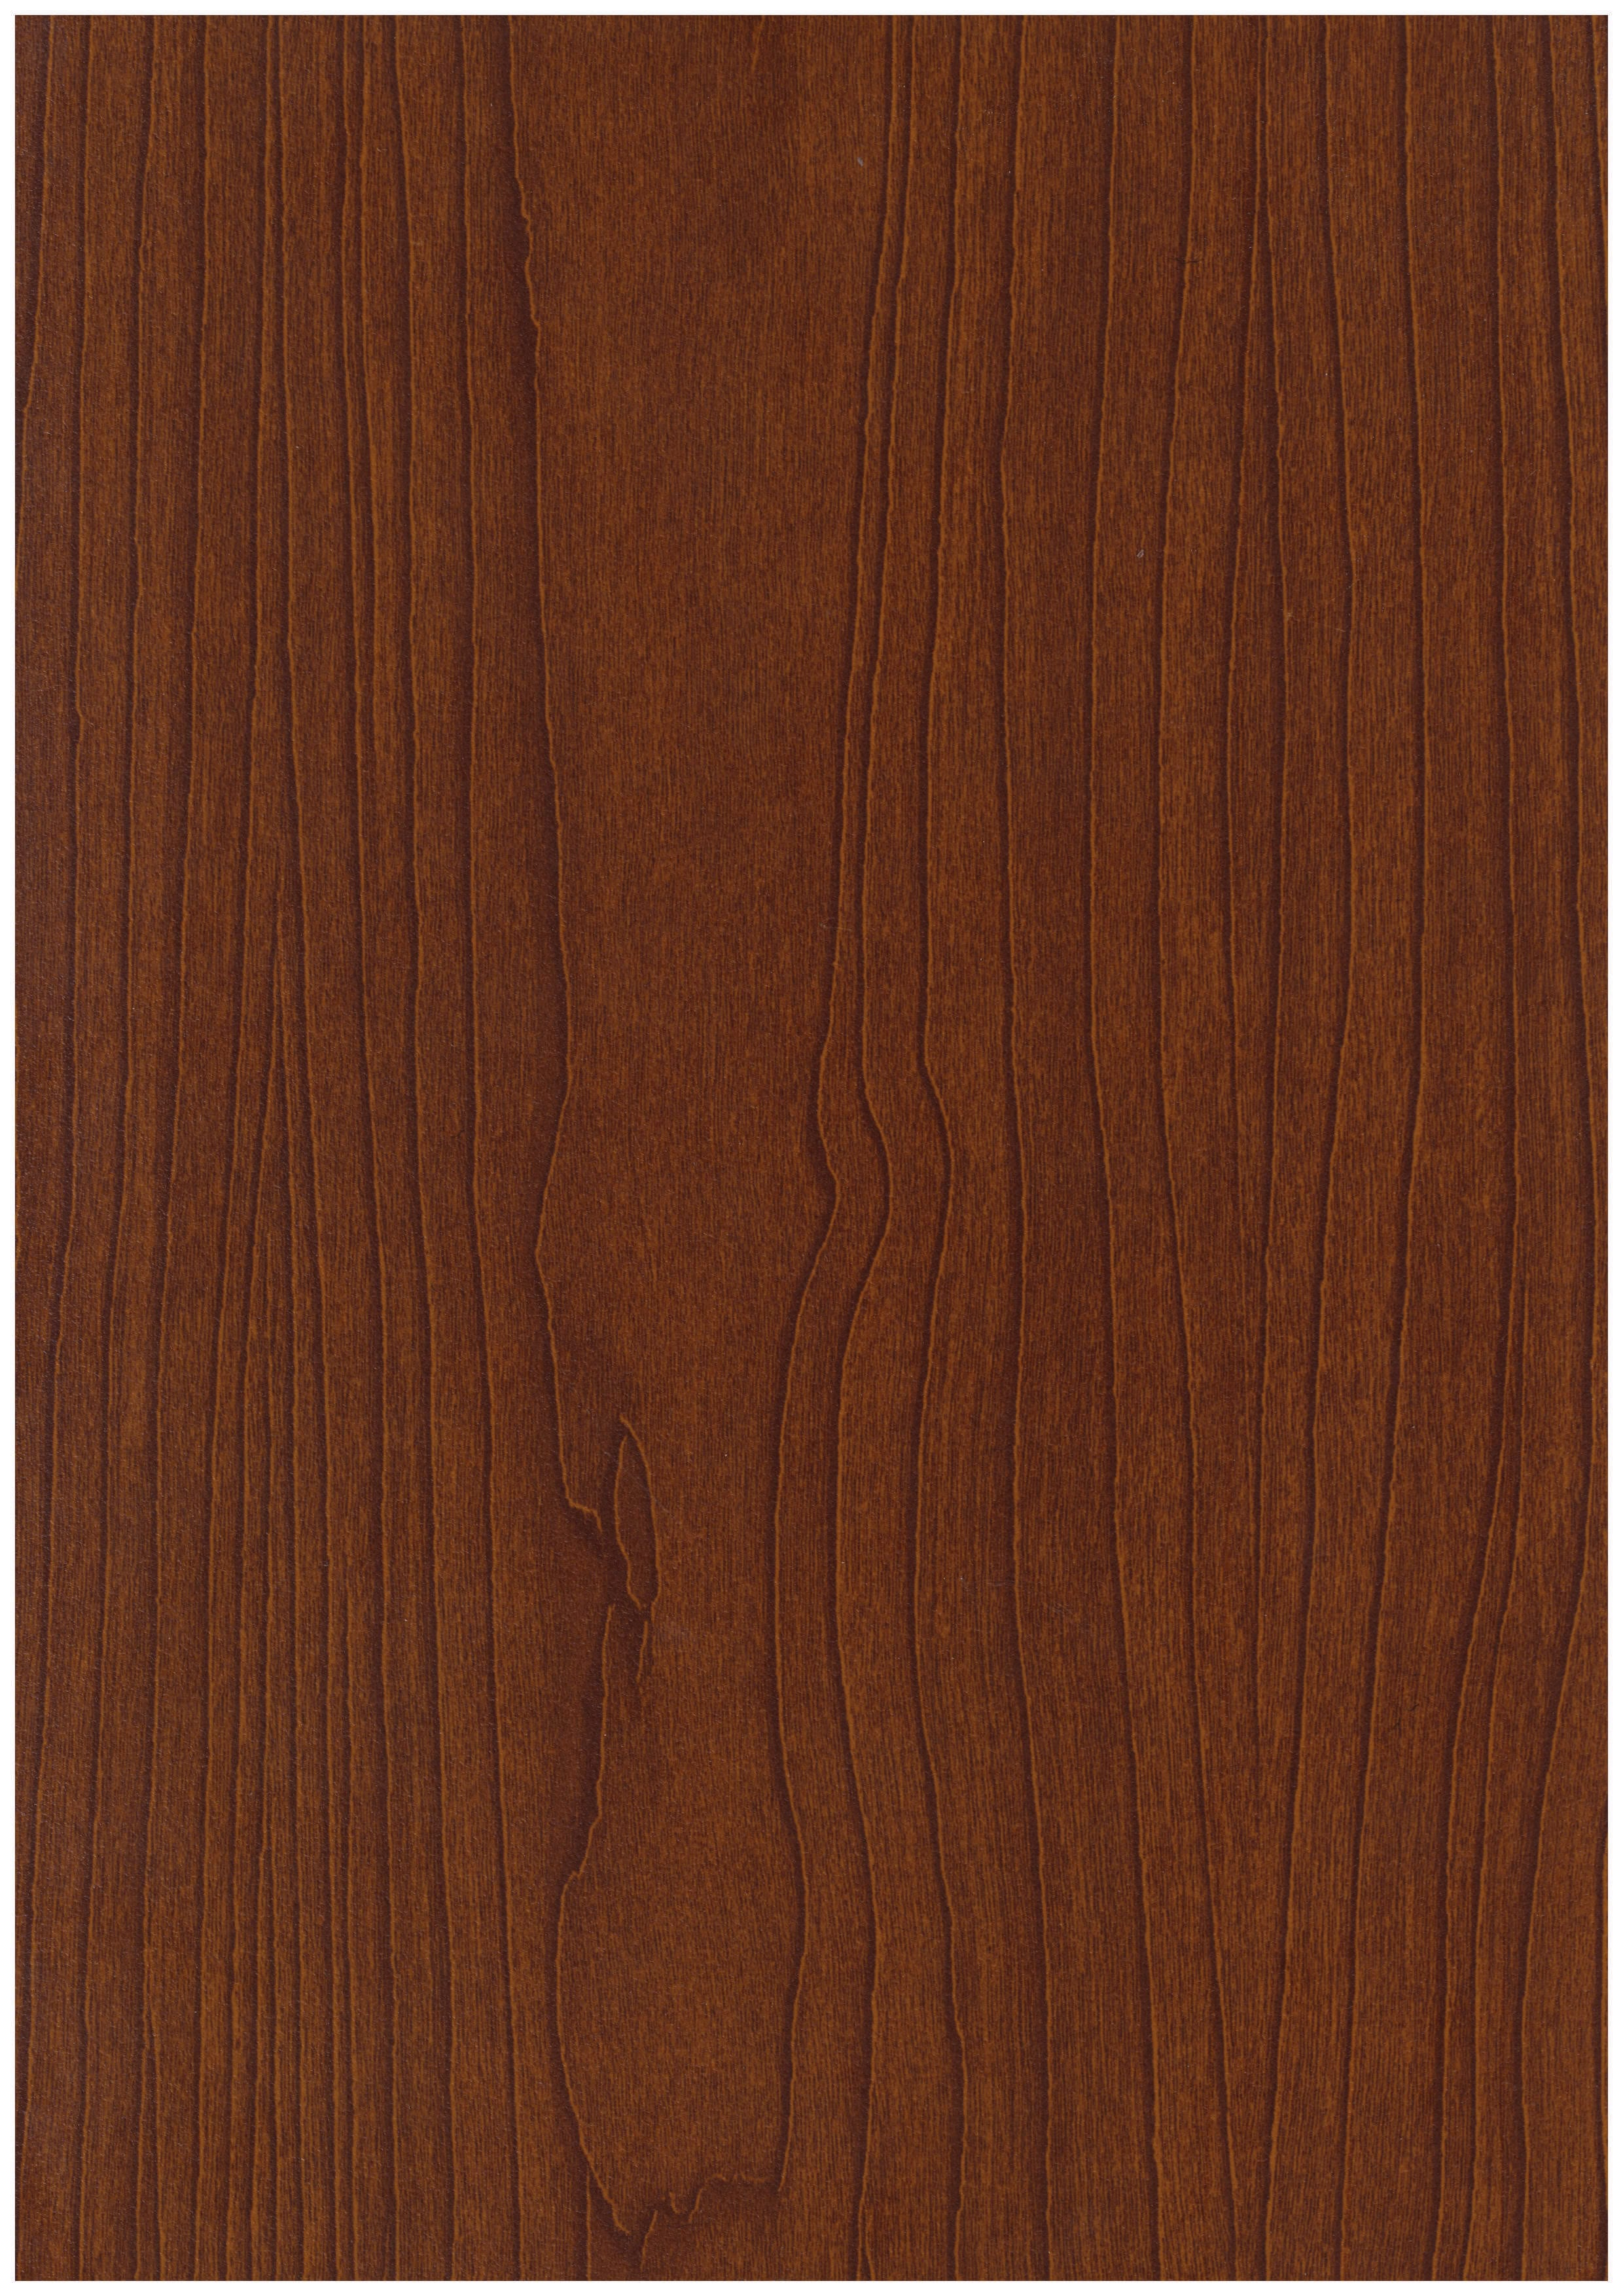 Knotwood - Largest range of wood grain colours on aluminium